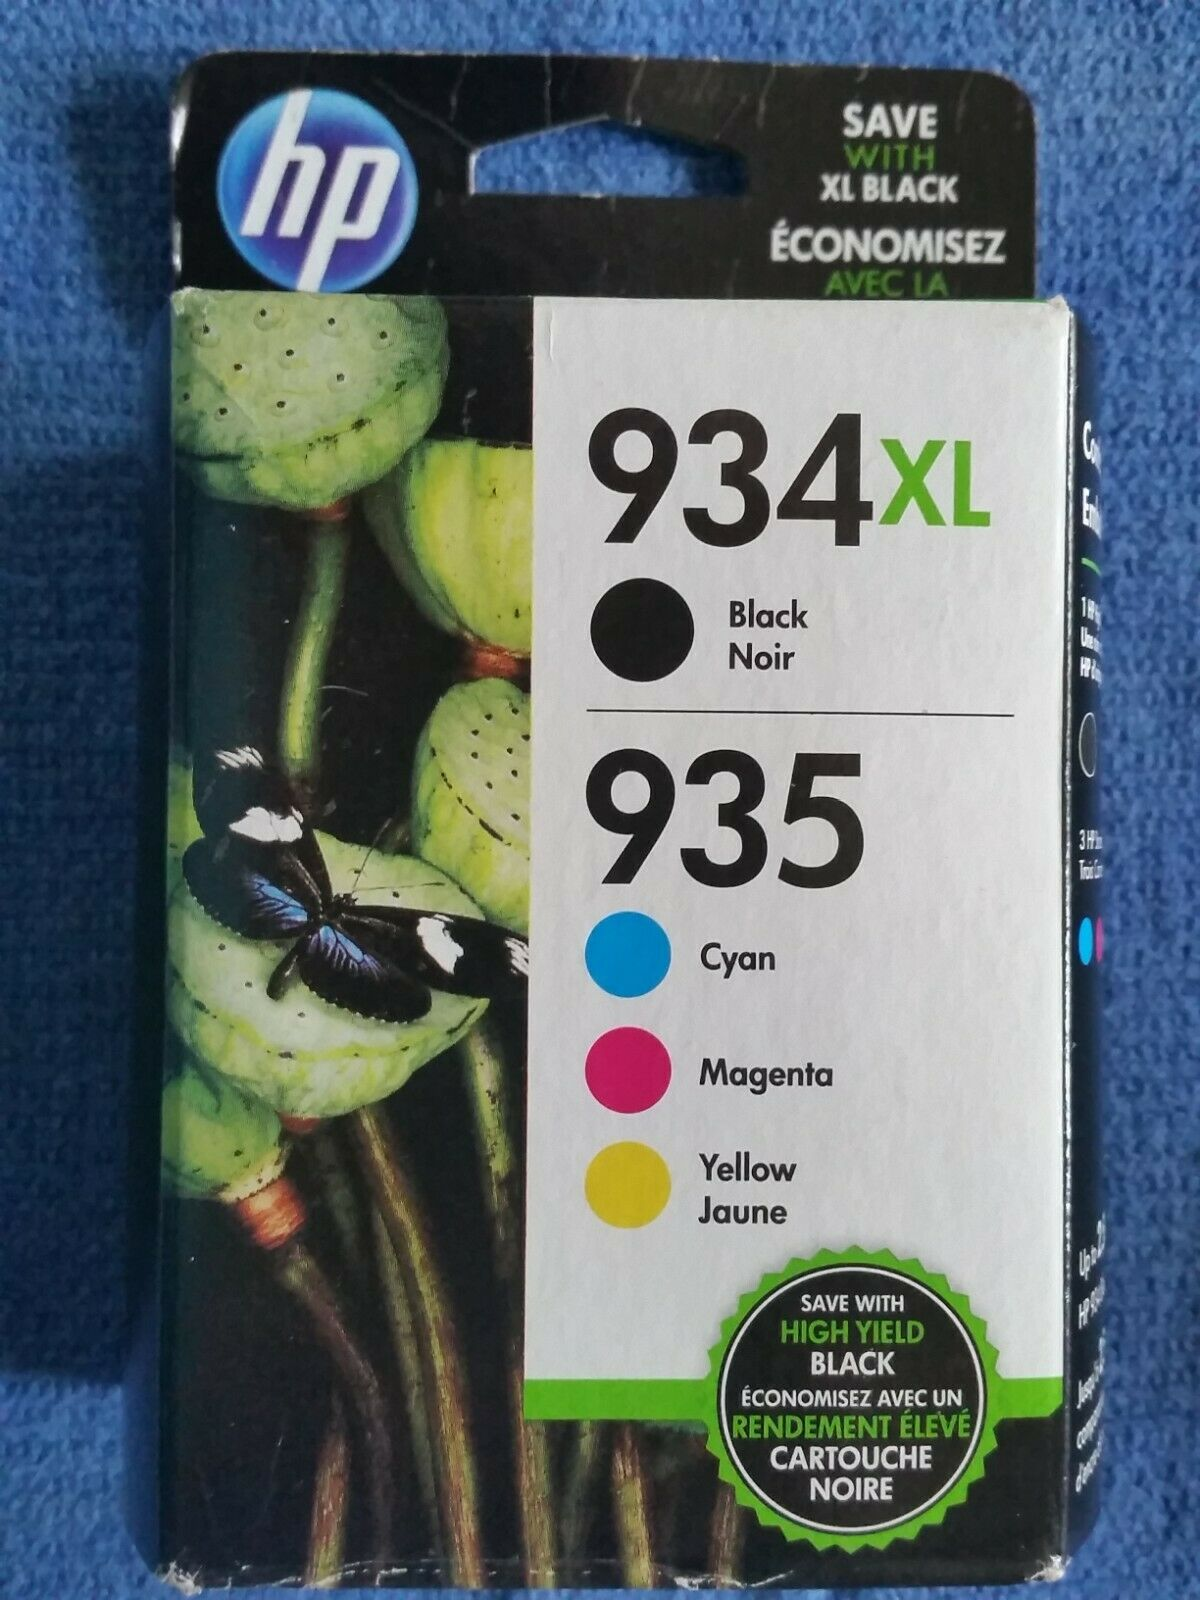 3 x Black HP 934XL and 2 x Color Set HP 935 Ink